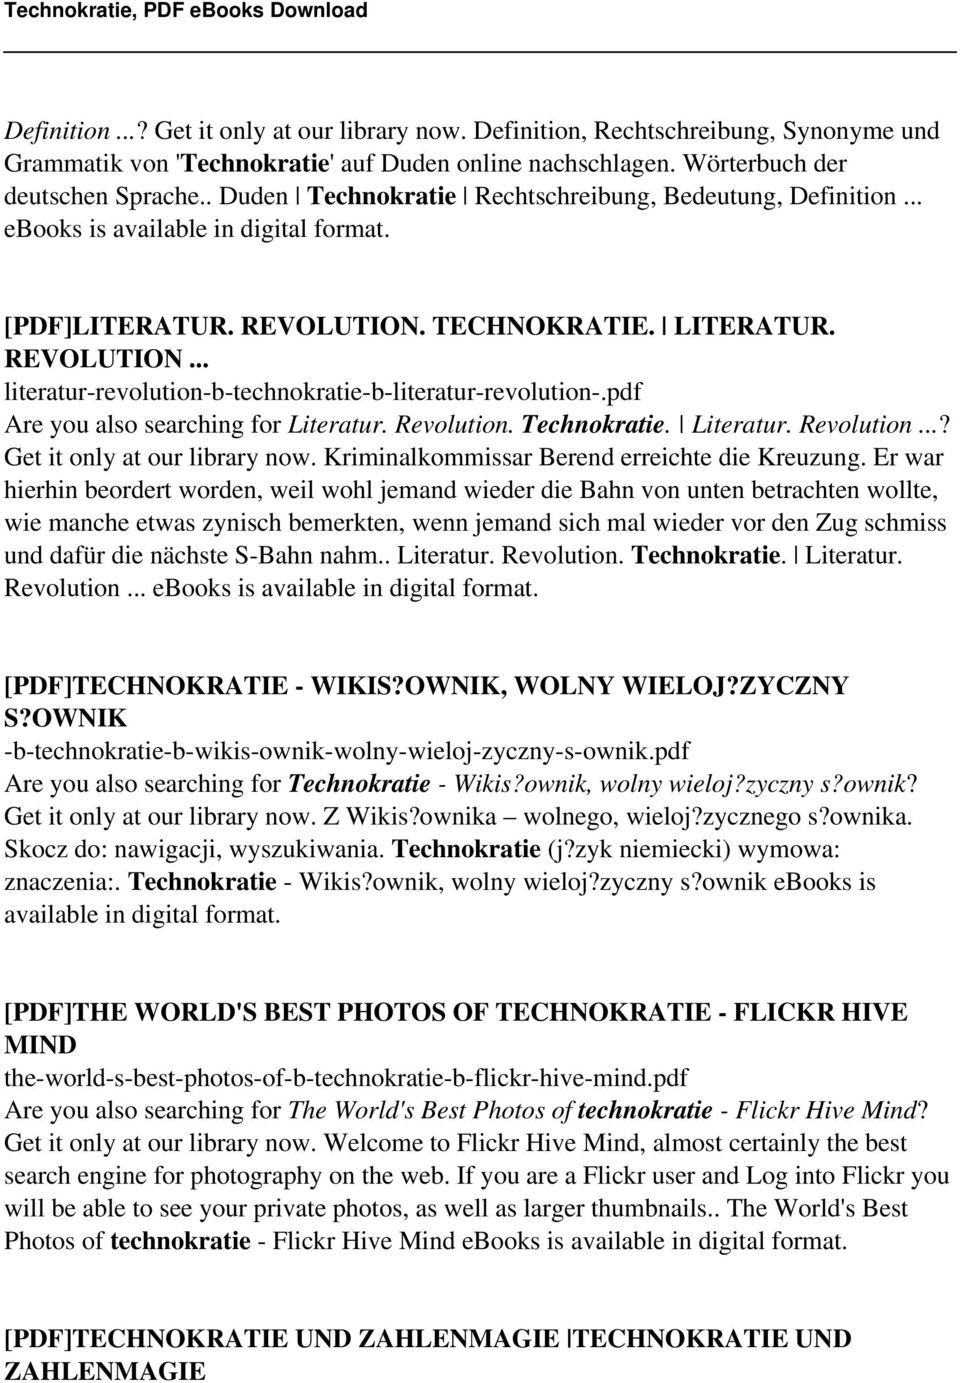 Technokratie, PDF  ==>Download: Technokratie, PDF ebook - PDF